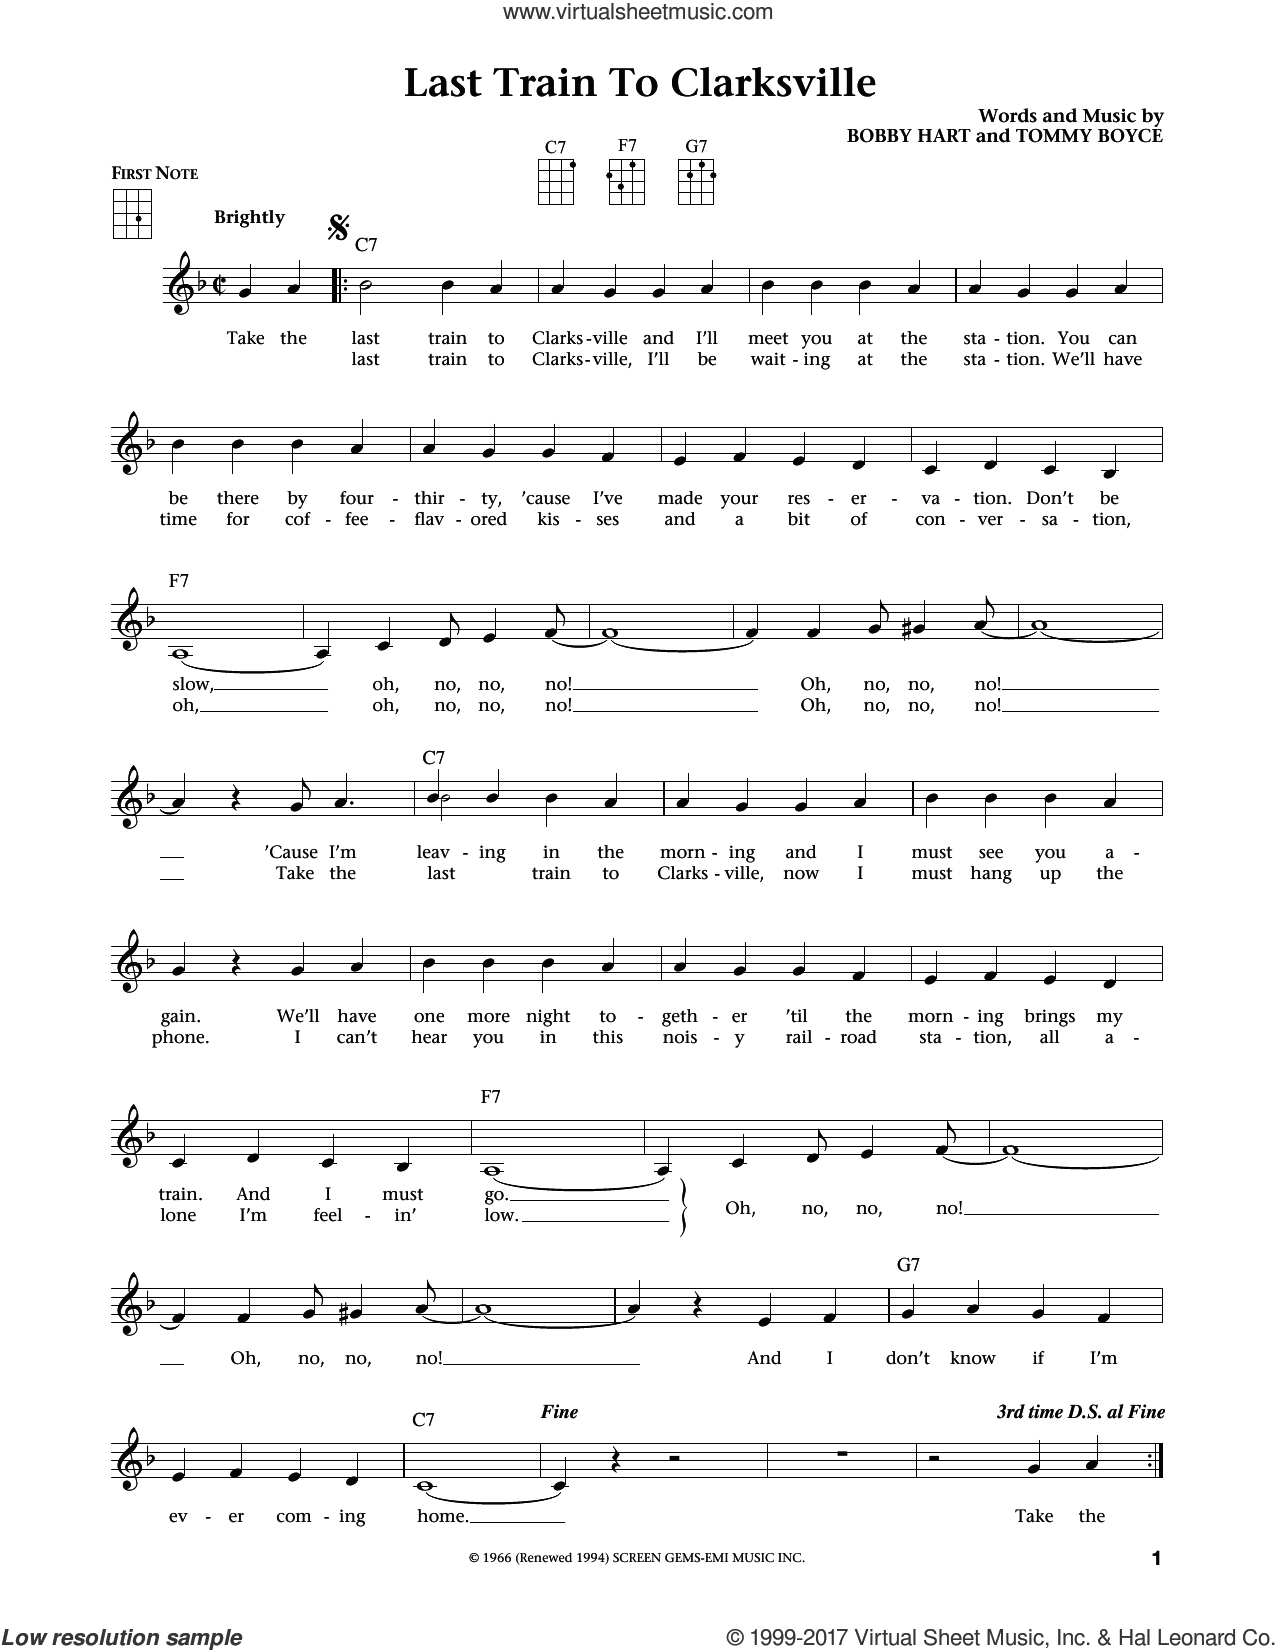 Last Train To Clarksville sheet music for ukulele by The Monkees, Jim Beloff, Liz Beloff, Bobby Hart and Tommy Boyce, intermediate skill level